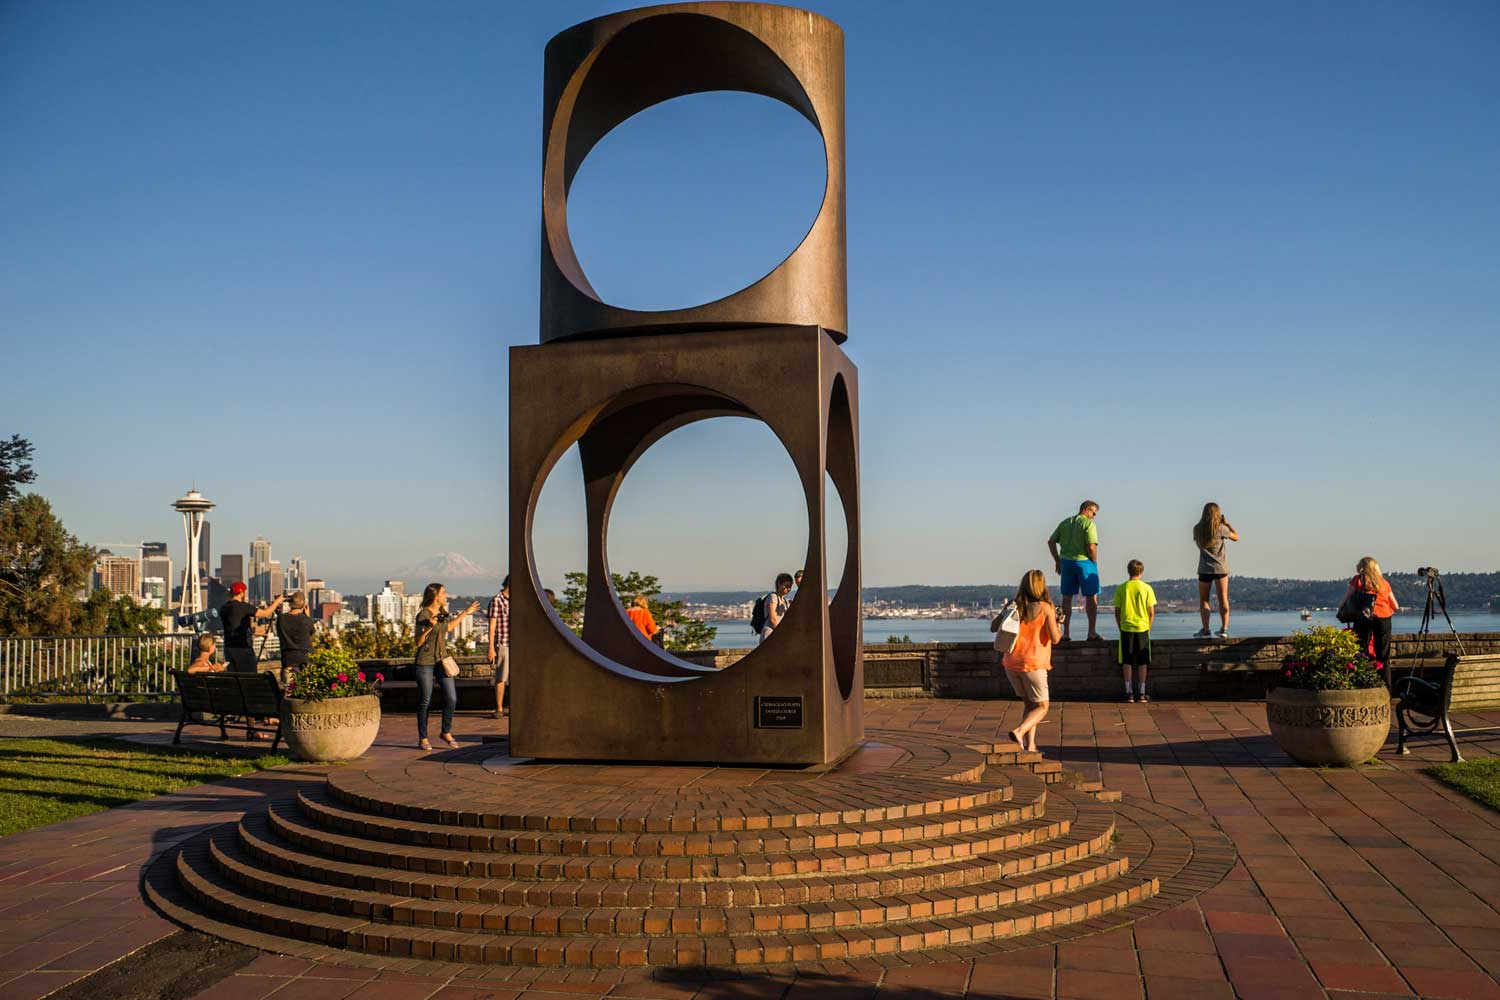 kerry park, Unique things to do in Seattle